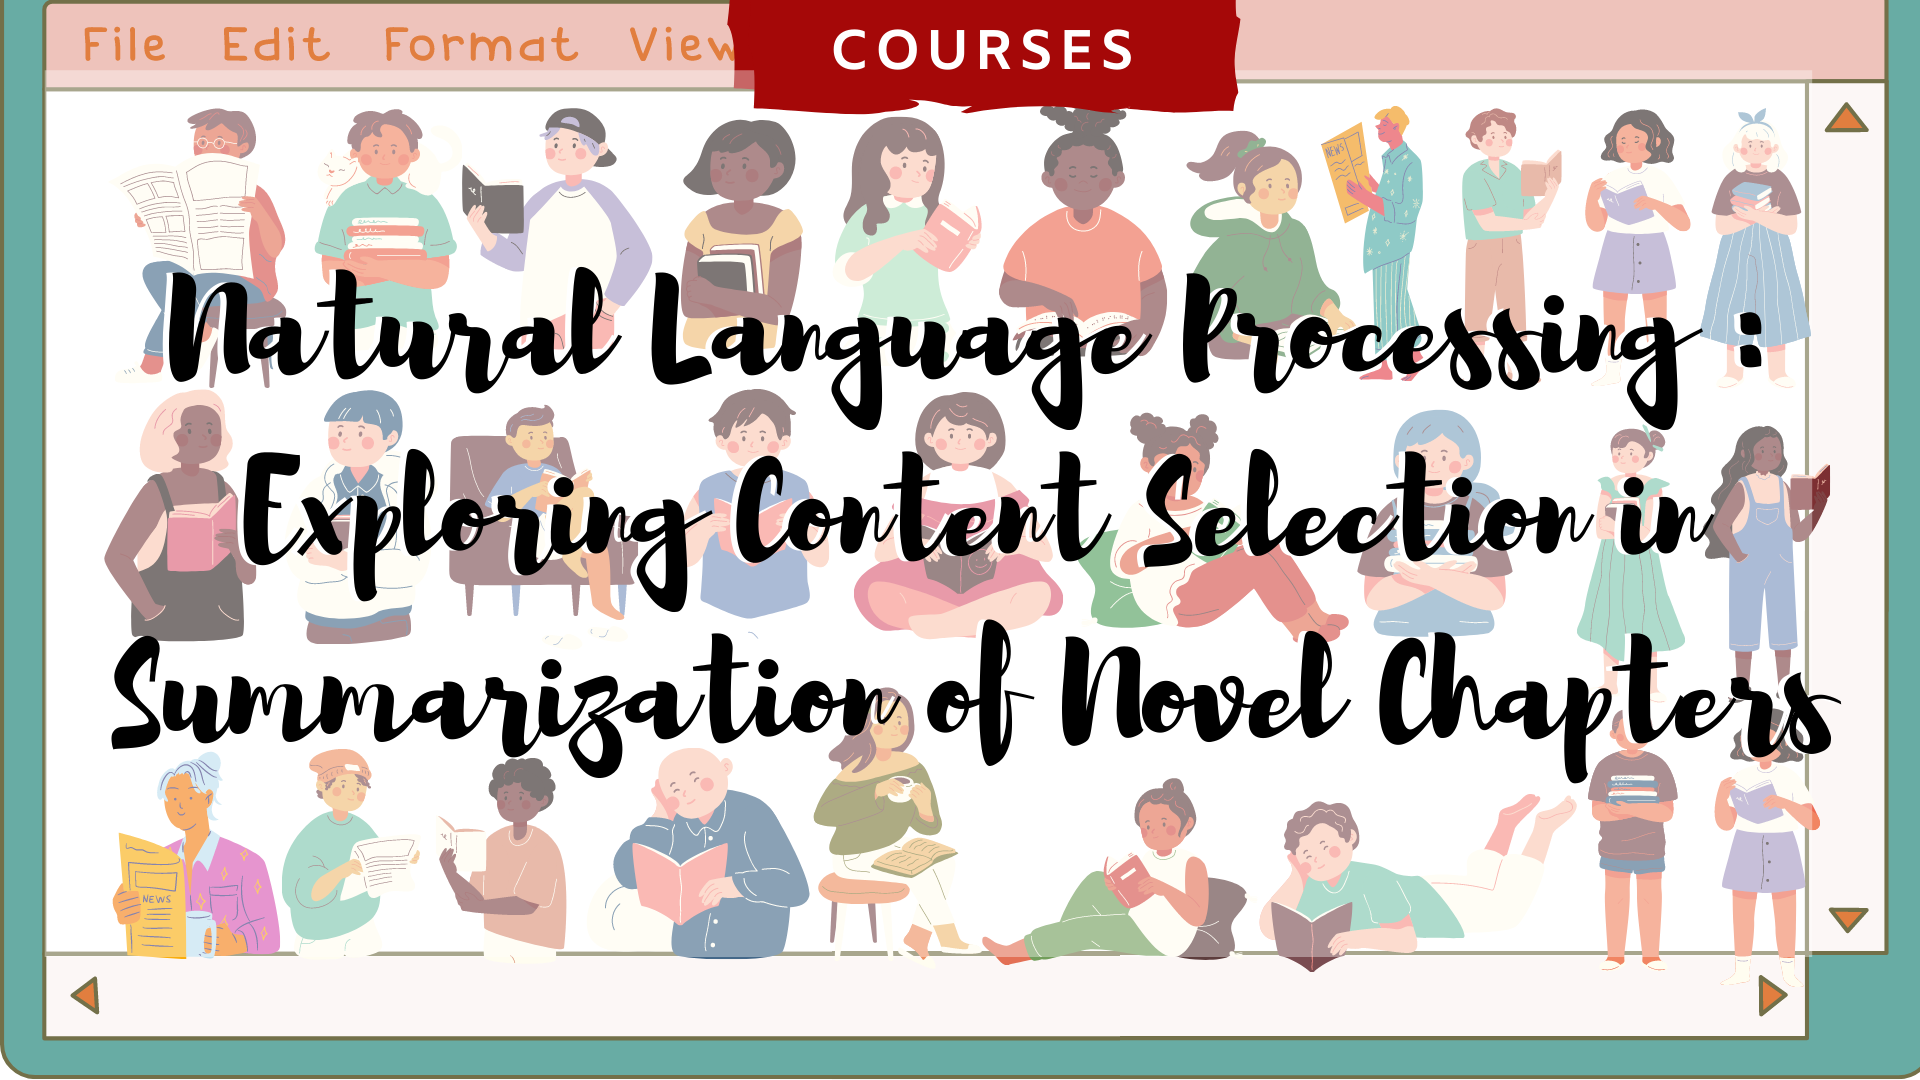 Natural Language Processing Paper Discussion: Exploring Content Selection in Summarization of Novel Chapters